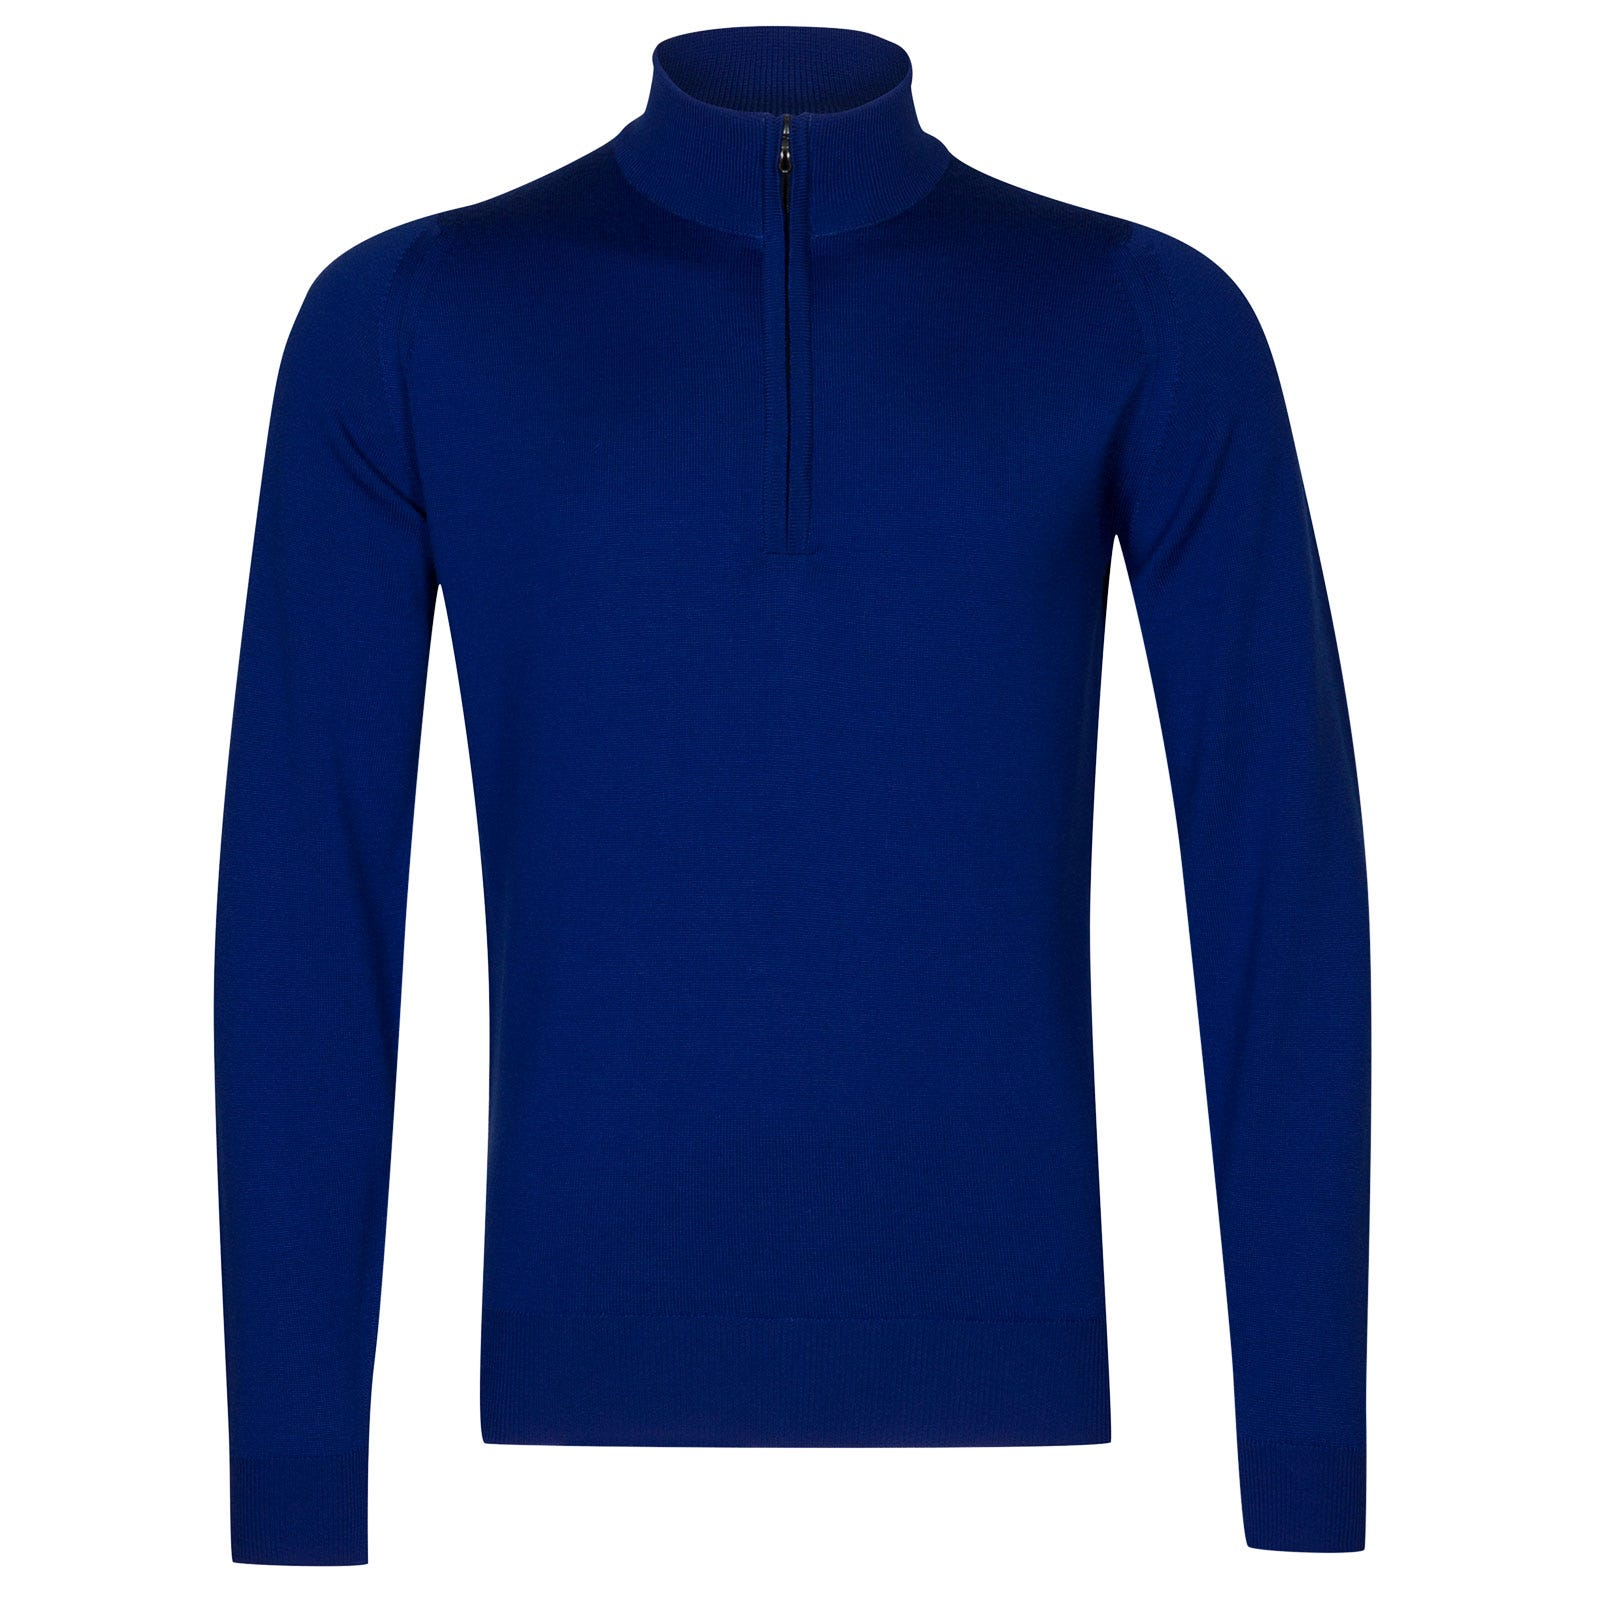 John Smedley tapton Merino Wool Pullover in Coniston Blue-XL